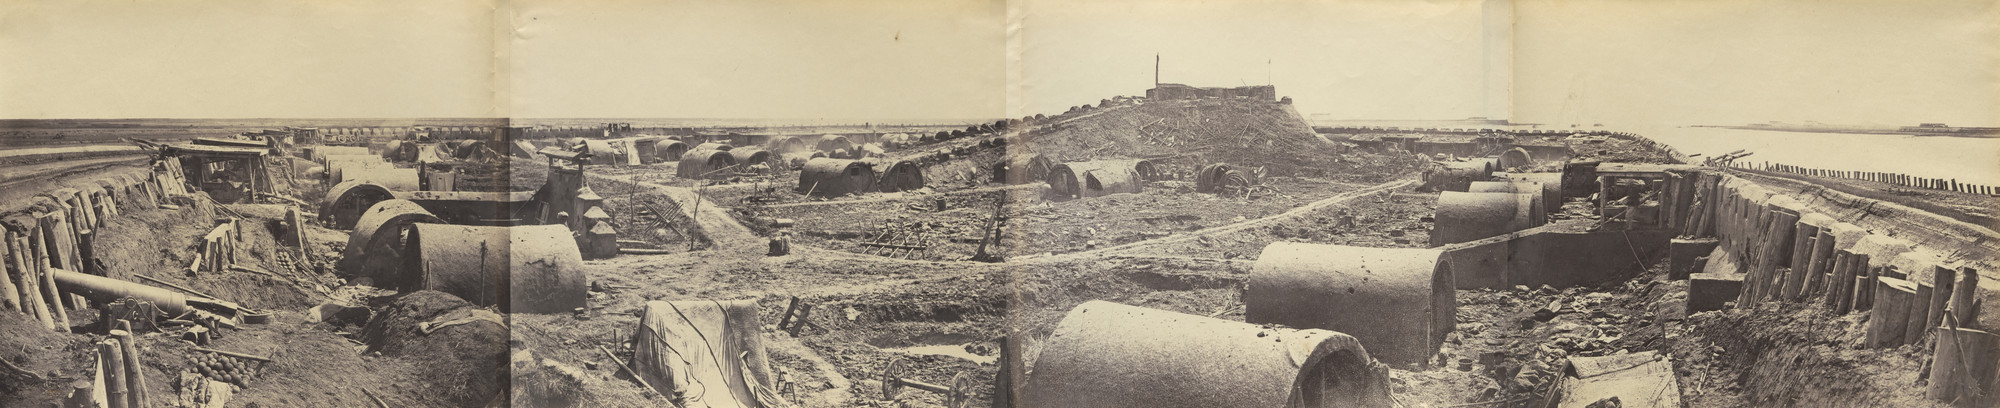 Felice Beato. Interior of the North Fort after the Capture on 21st August 1860. 1860